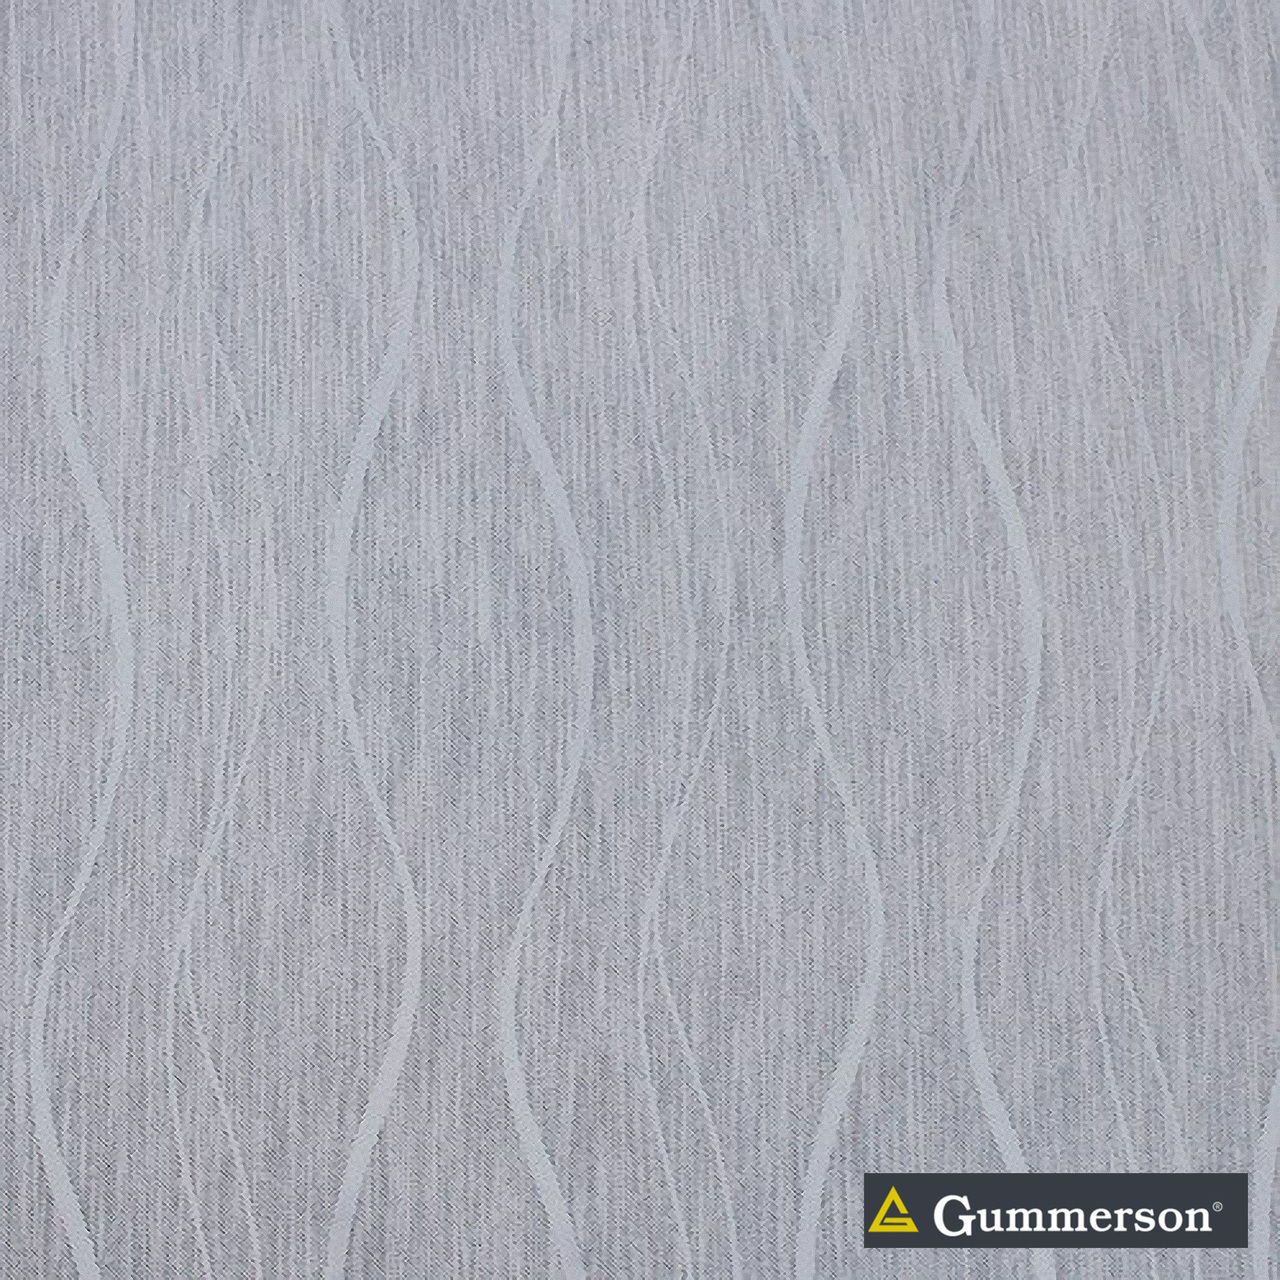 Mist' | Curtain Lining Fabric - Fire Retardant, Grey, Contemporary, Pattern, Stripe, Synthetic fibre, Transitional, Washable, Weave, Domestic Use, Softweave